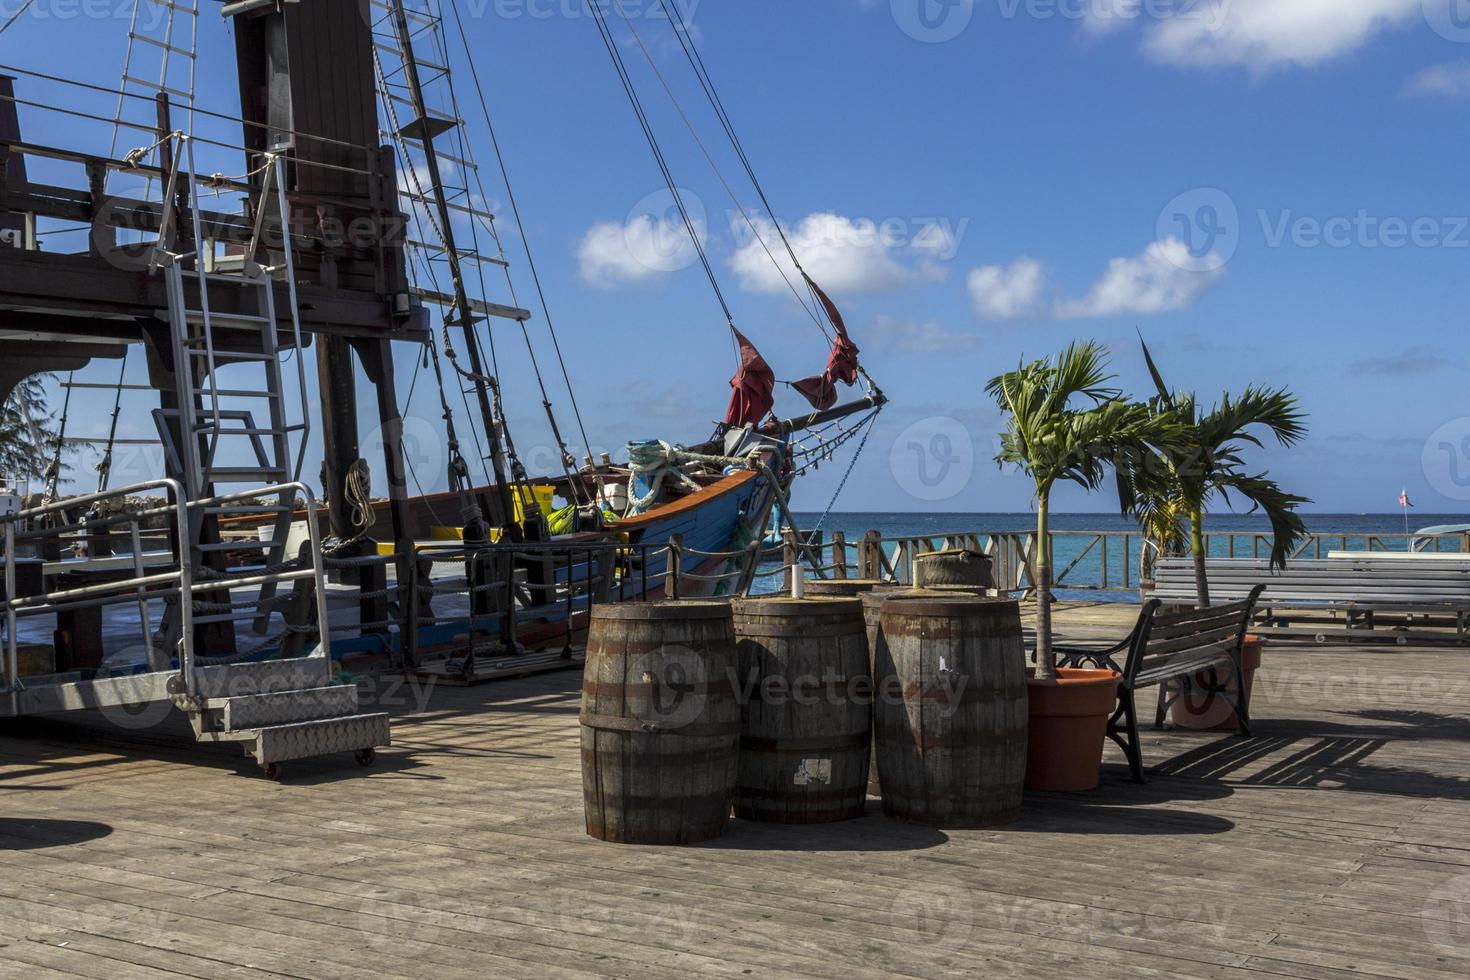 Commercial pirate ship photo